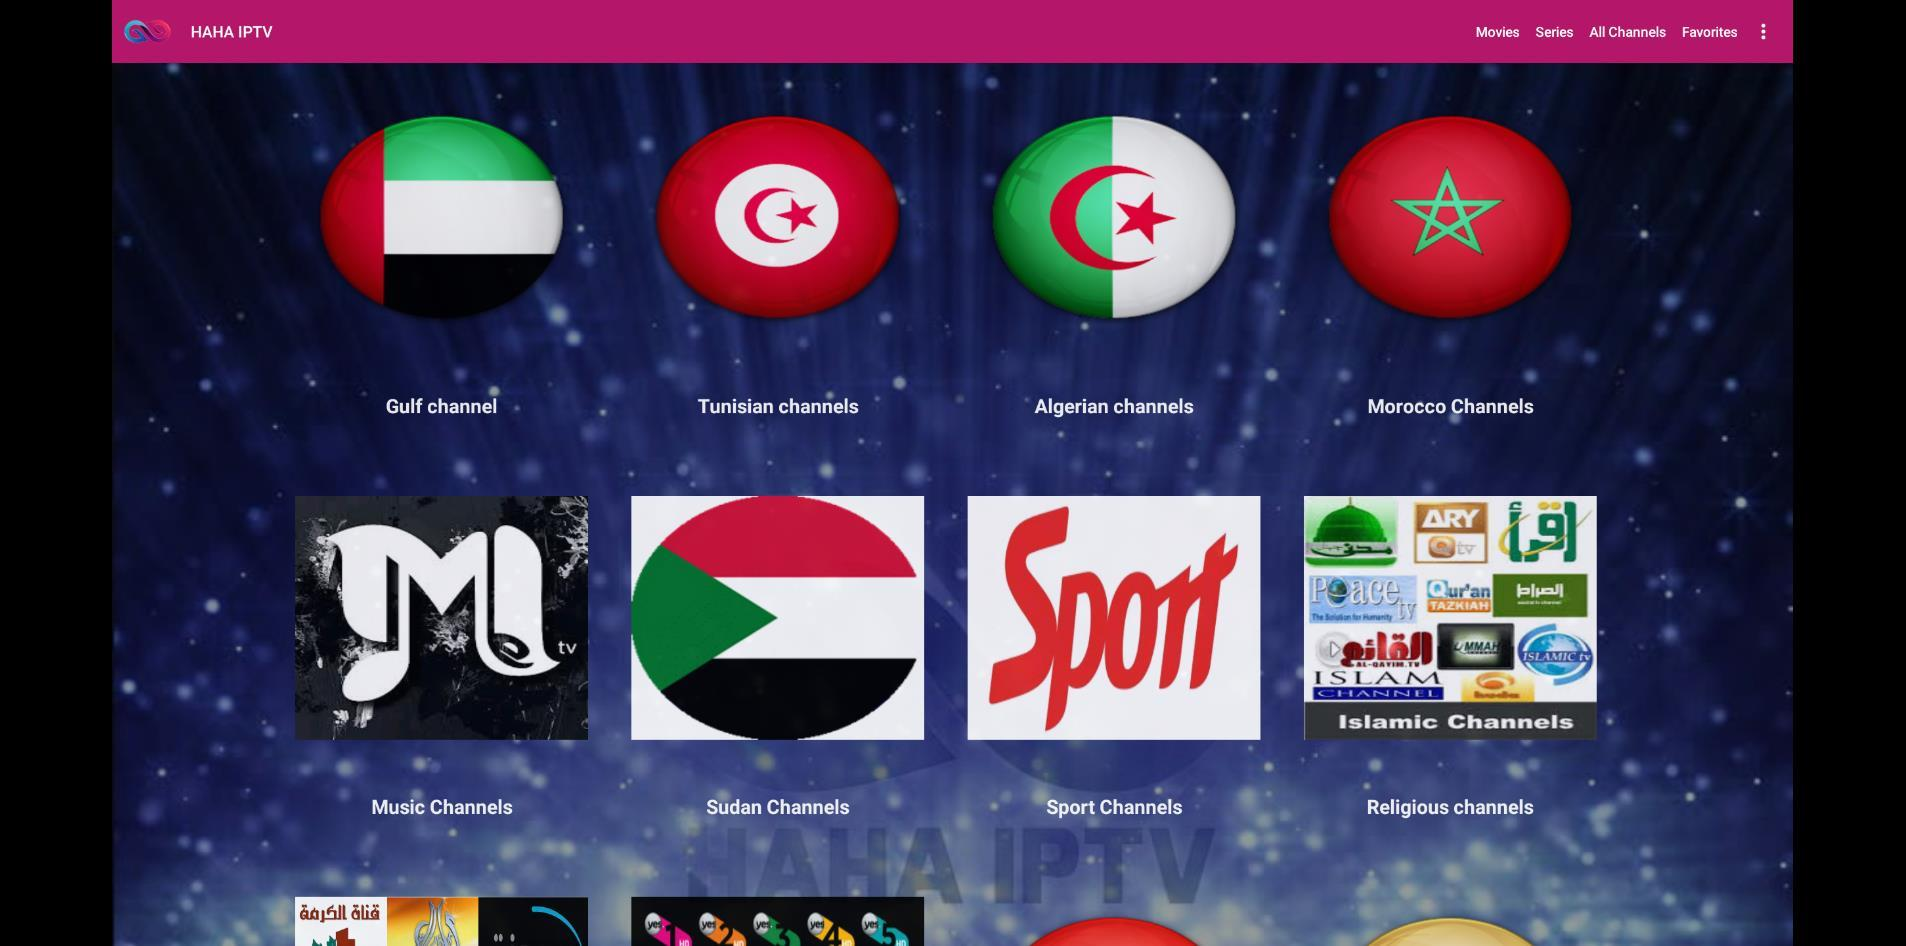 HAHA IP TV 3000+ Premium Channels - 1-Day Tryout + N e t f l i x Shows -  Instant Email Delivery